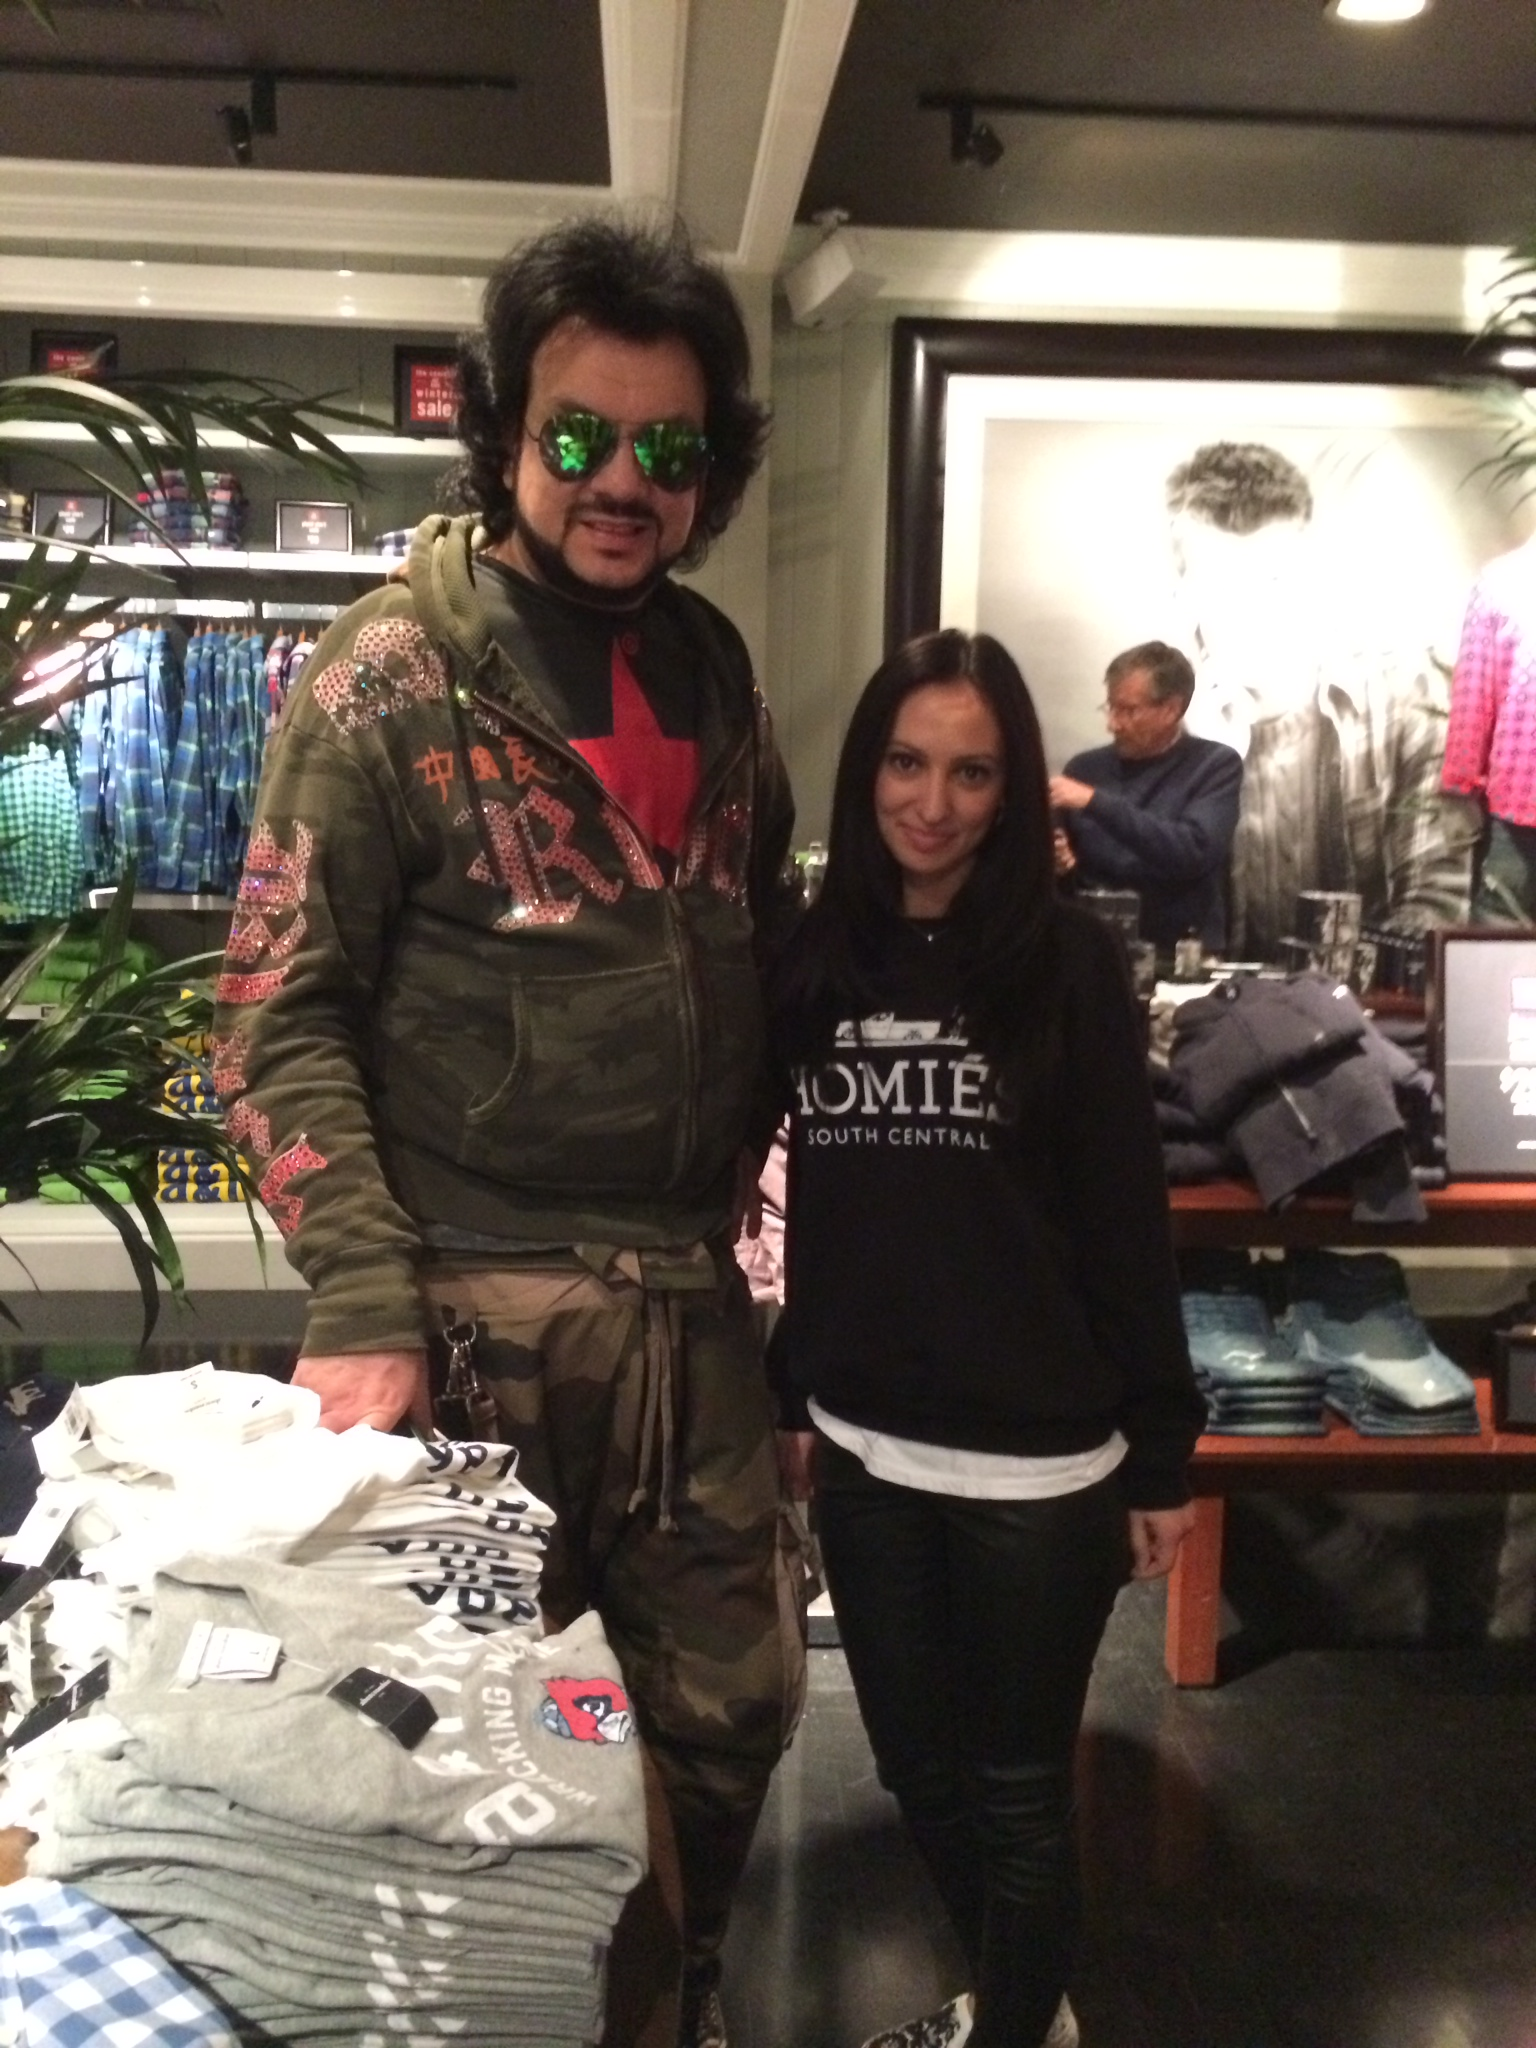 Philip Kirkorov is on a tight diet 12/10/2009 4